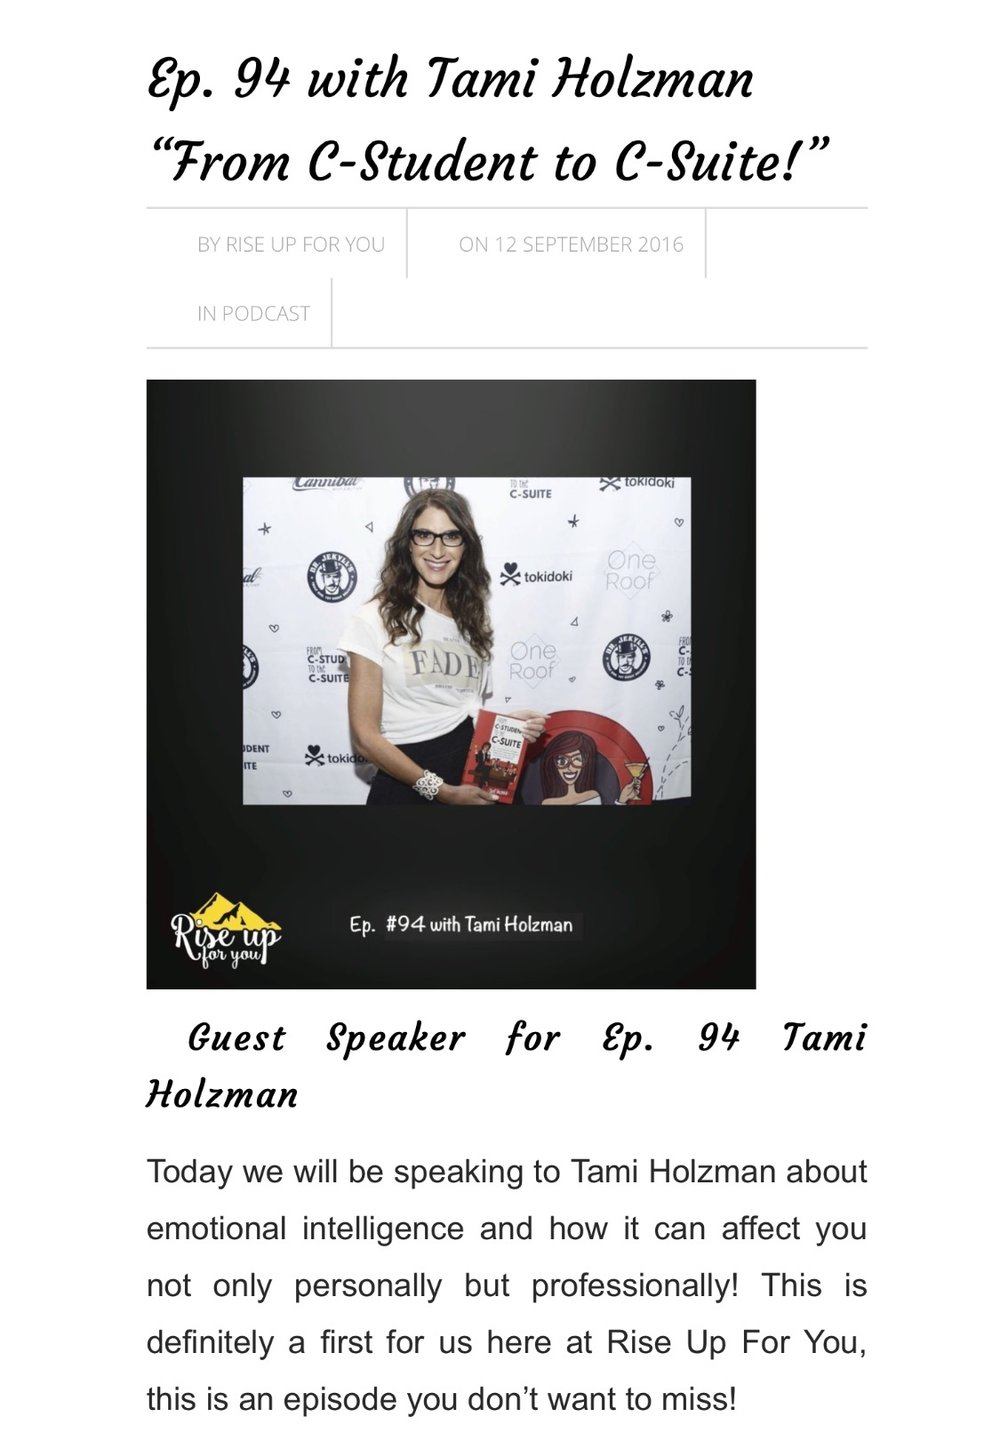 #TamiHolzman Tami Holzman #Keynotespeaker, Keynote Speaker, #emotionalintellegence Emotional Intelligence, #eq #csuite C-Suite #sales Sales #Author #Writer #Speaker, Author, female empowerment, #Business Business #Press Press